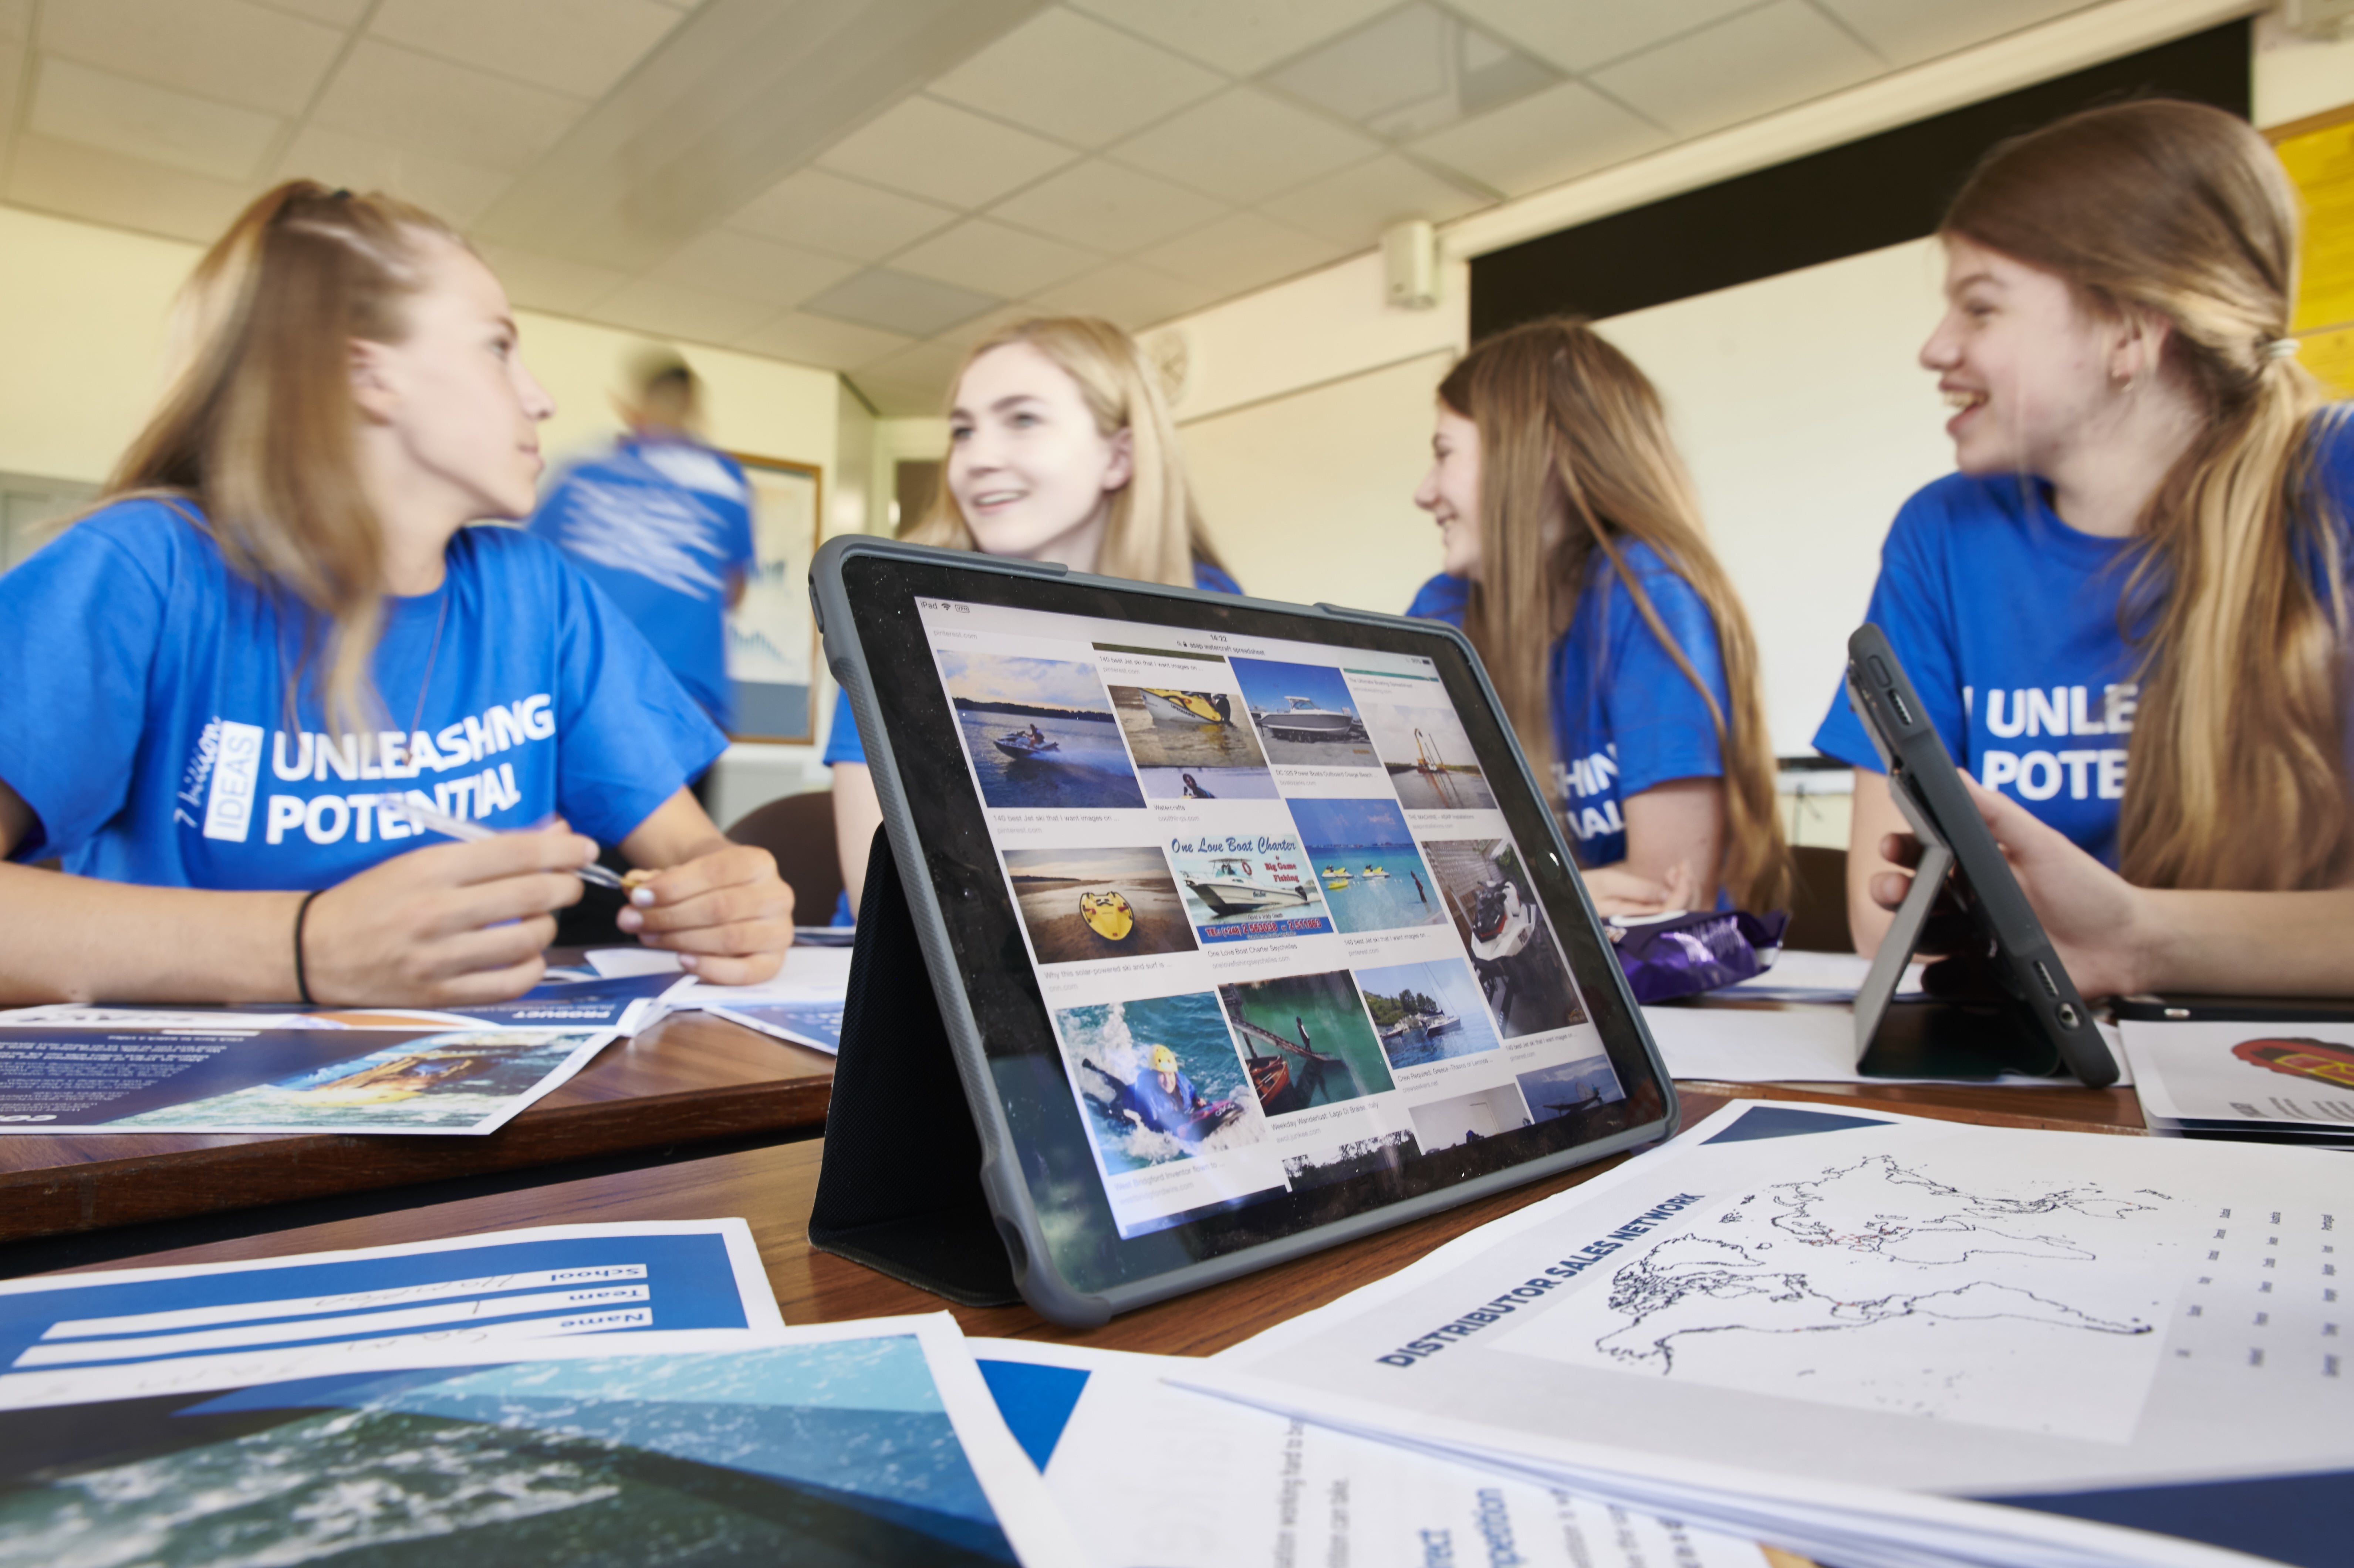 Students on Unleashing Potential gather round a tablet